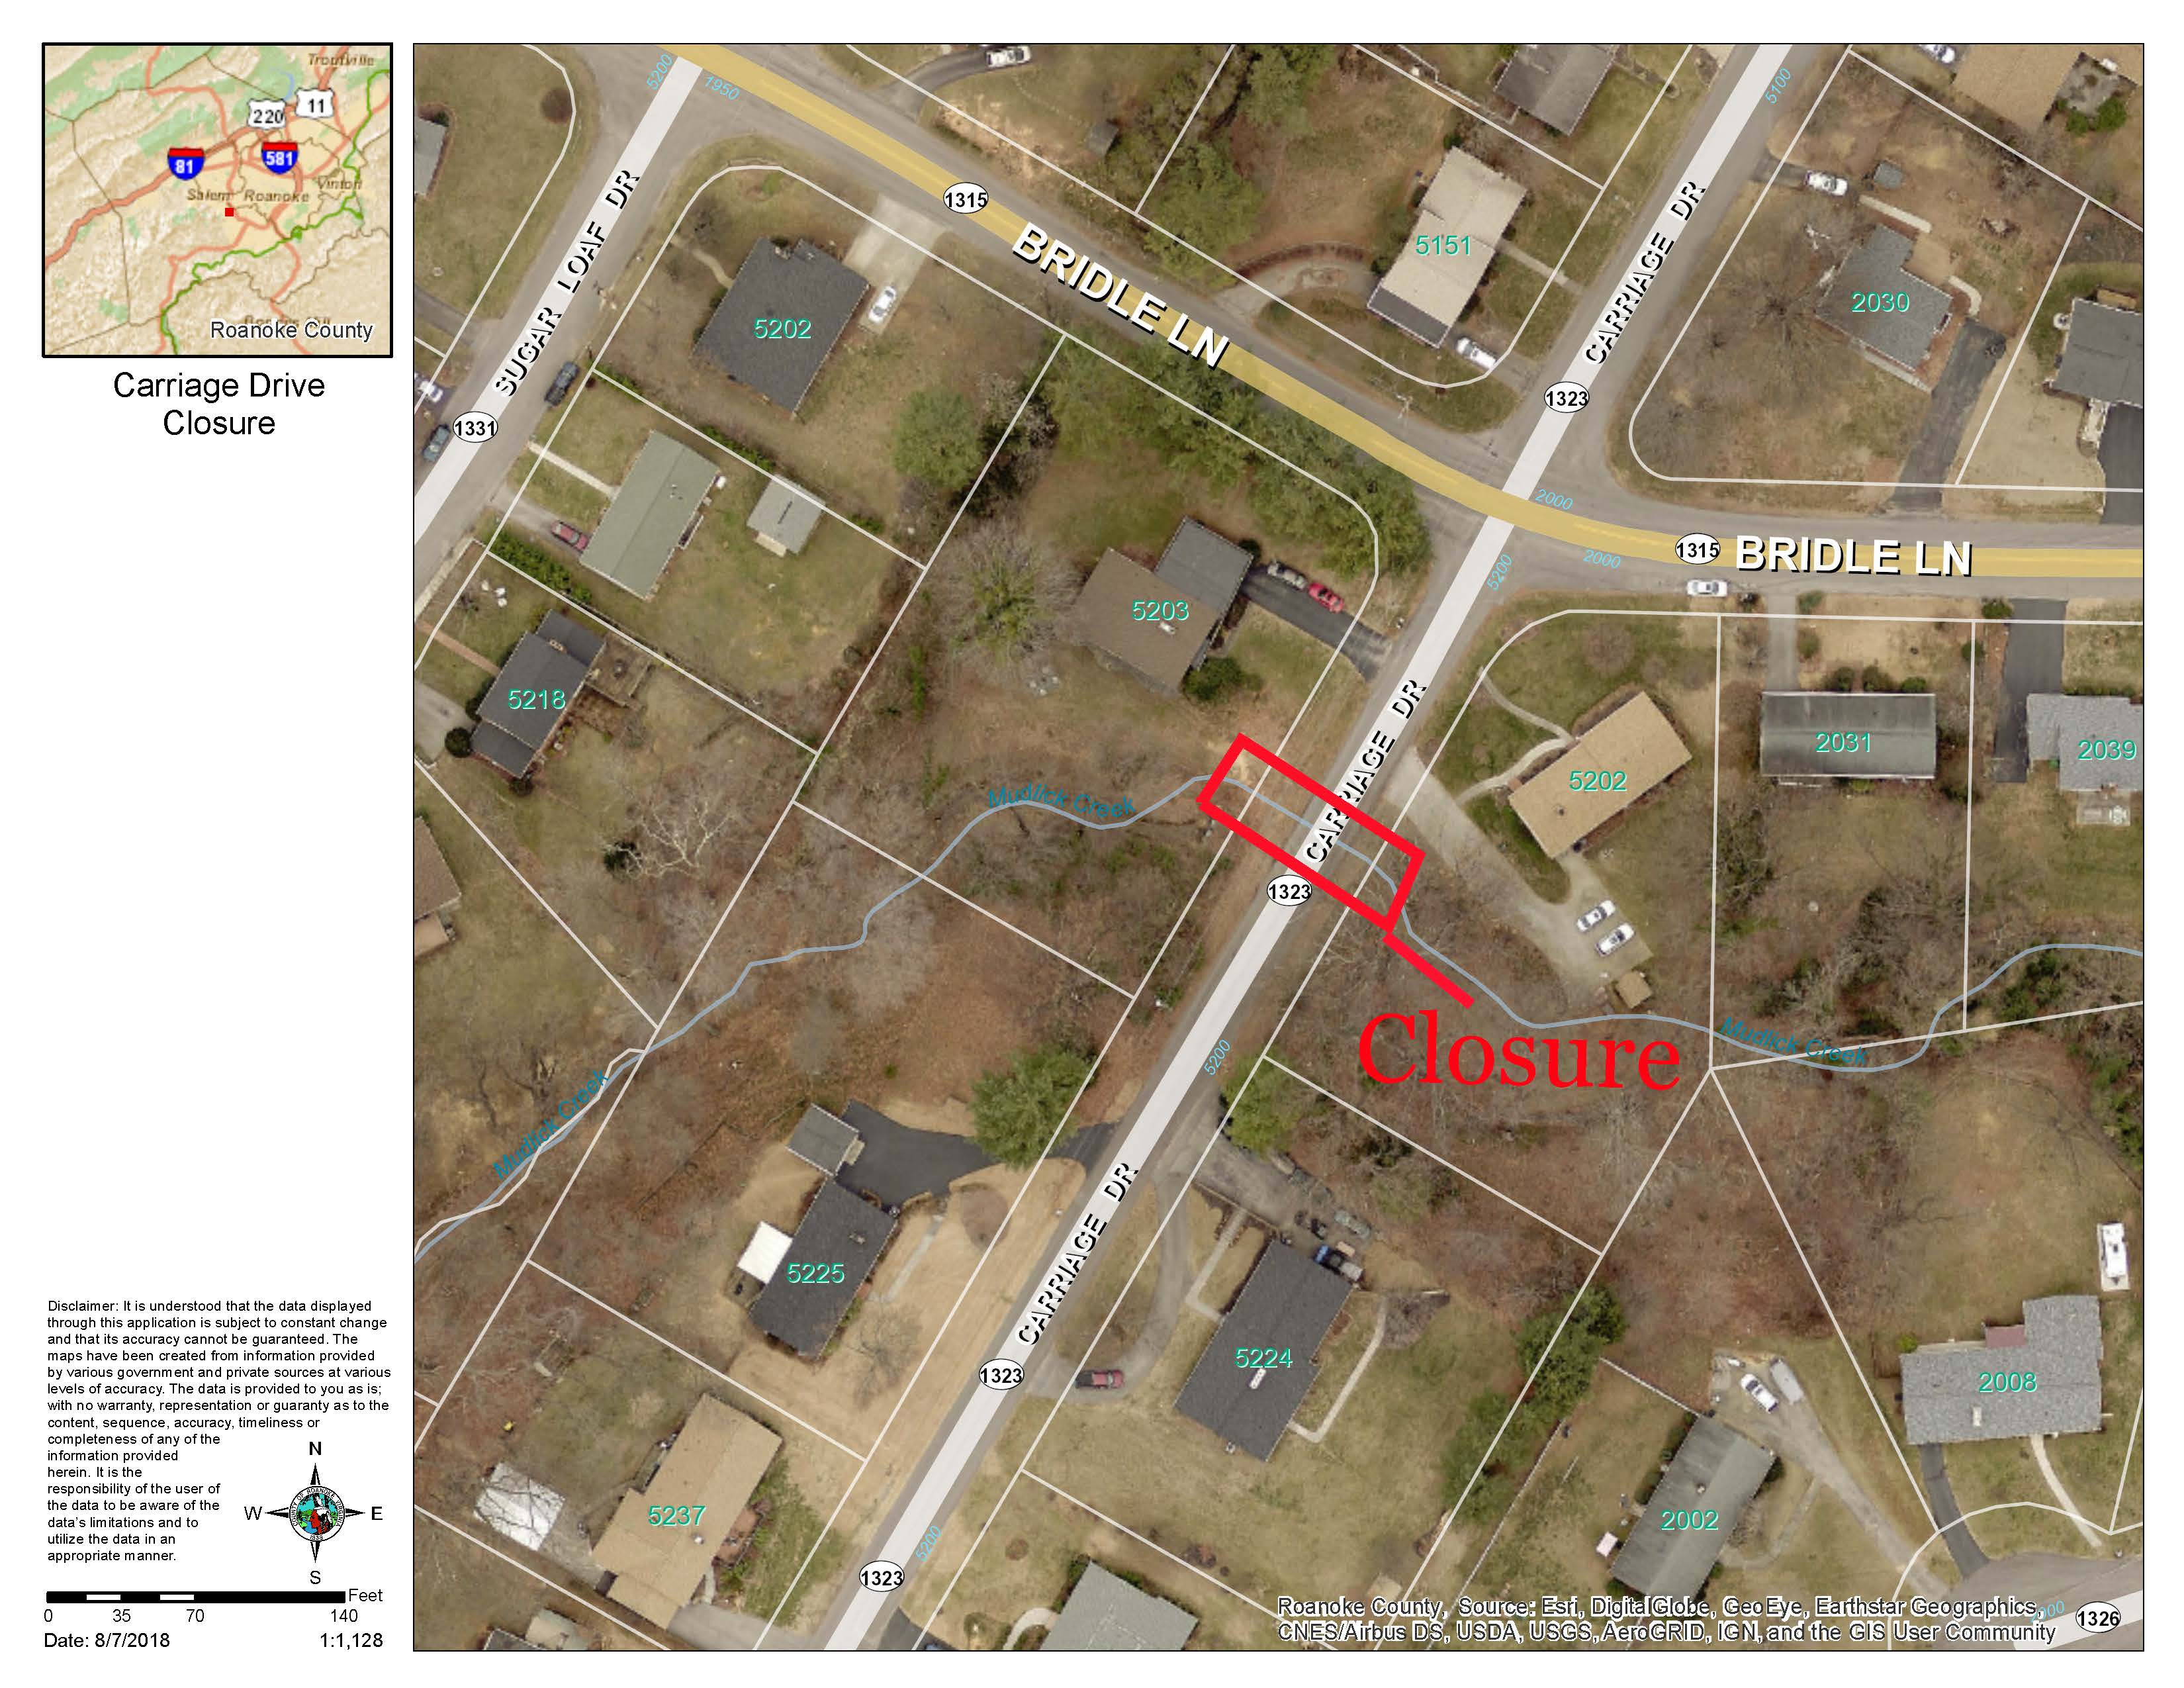 Carriage Drive (Route 1323) Closure